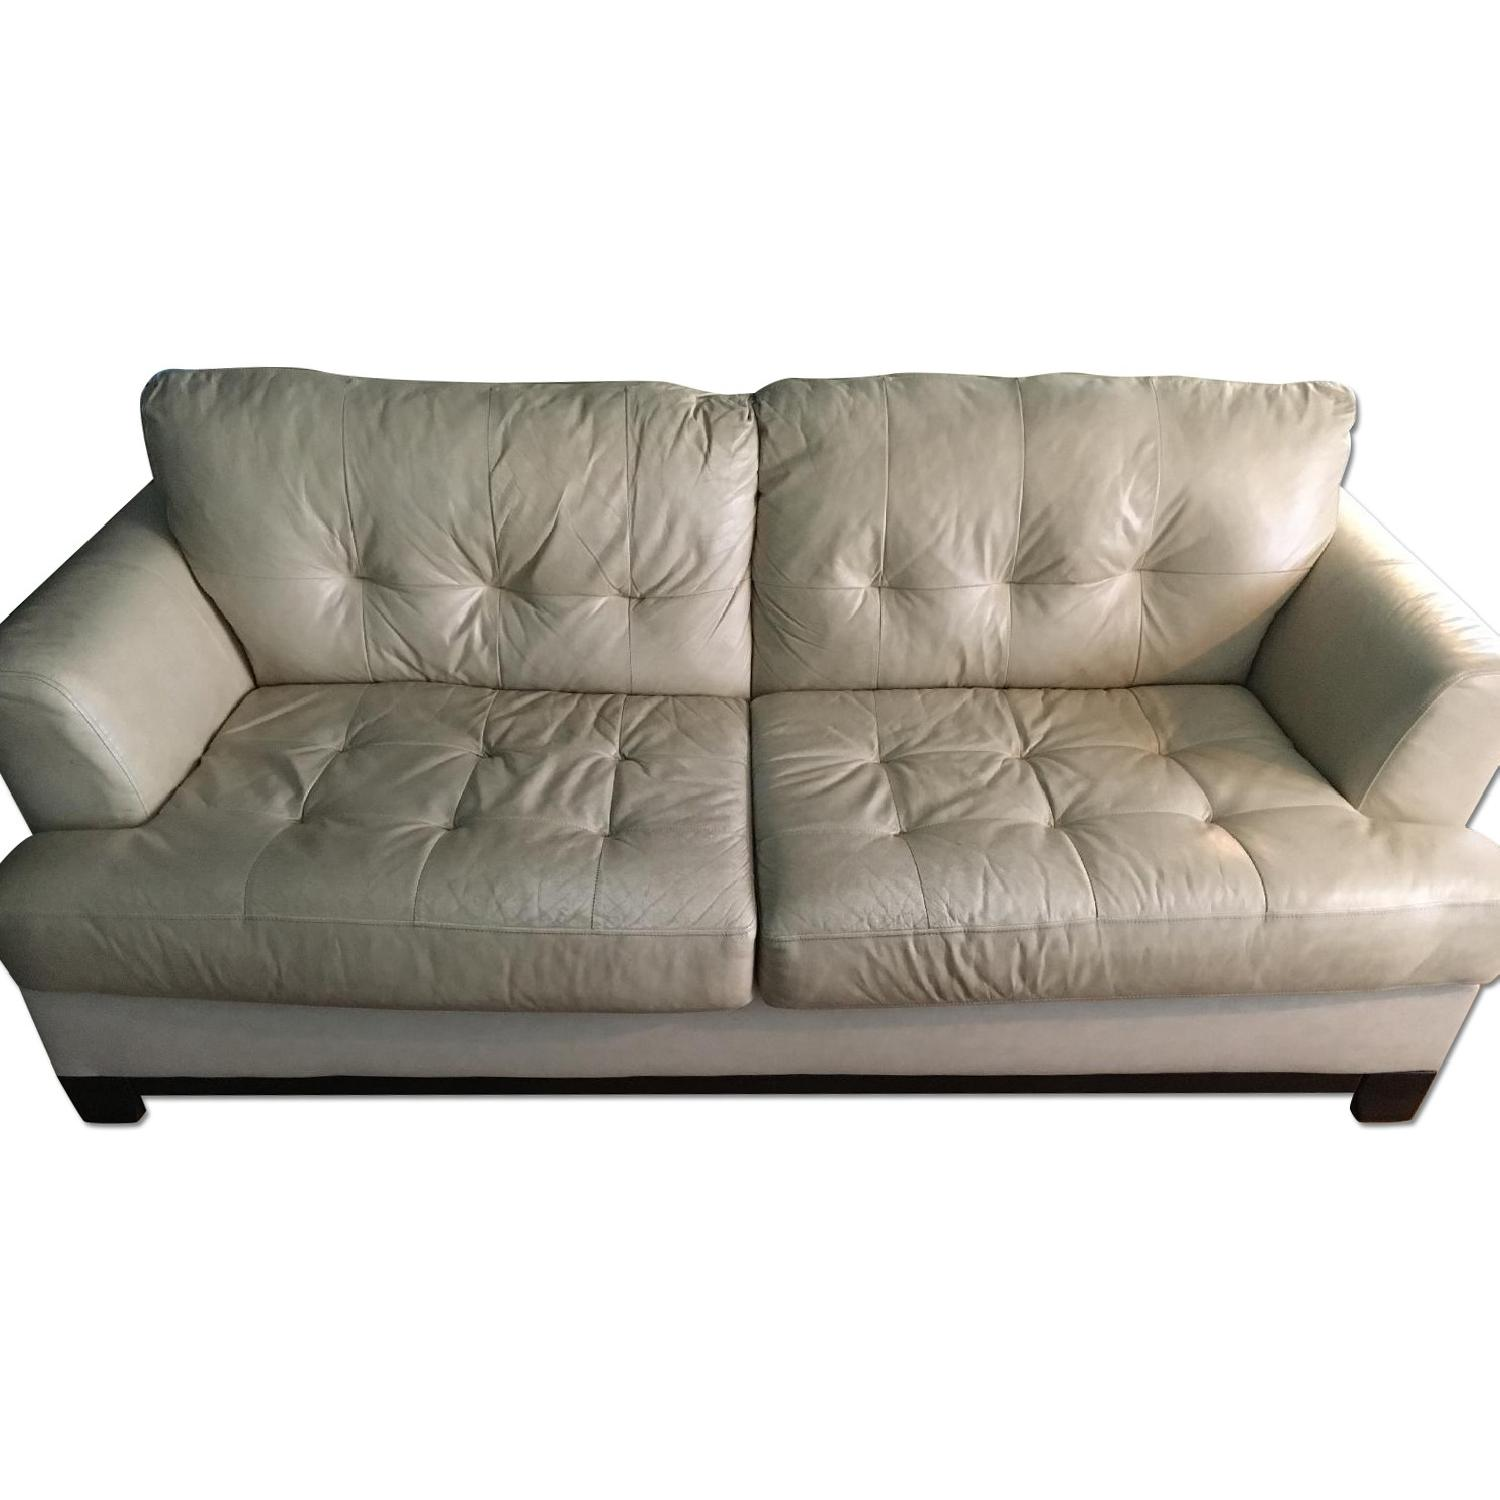 Leather Tufted Sofa + 2 Side Chairs